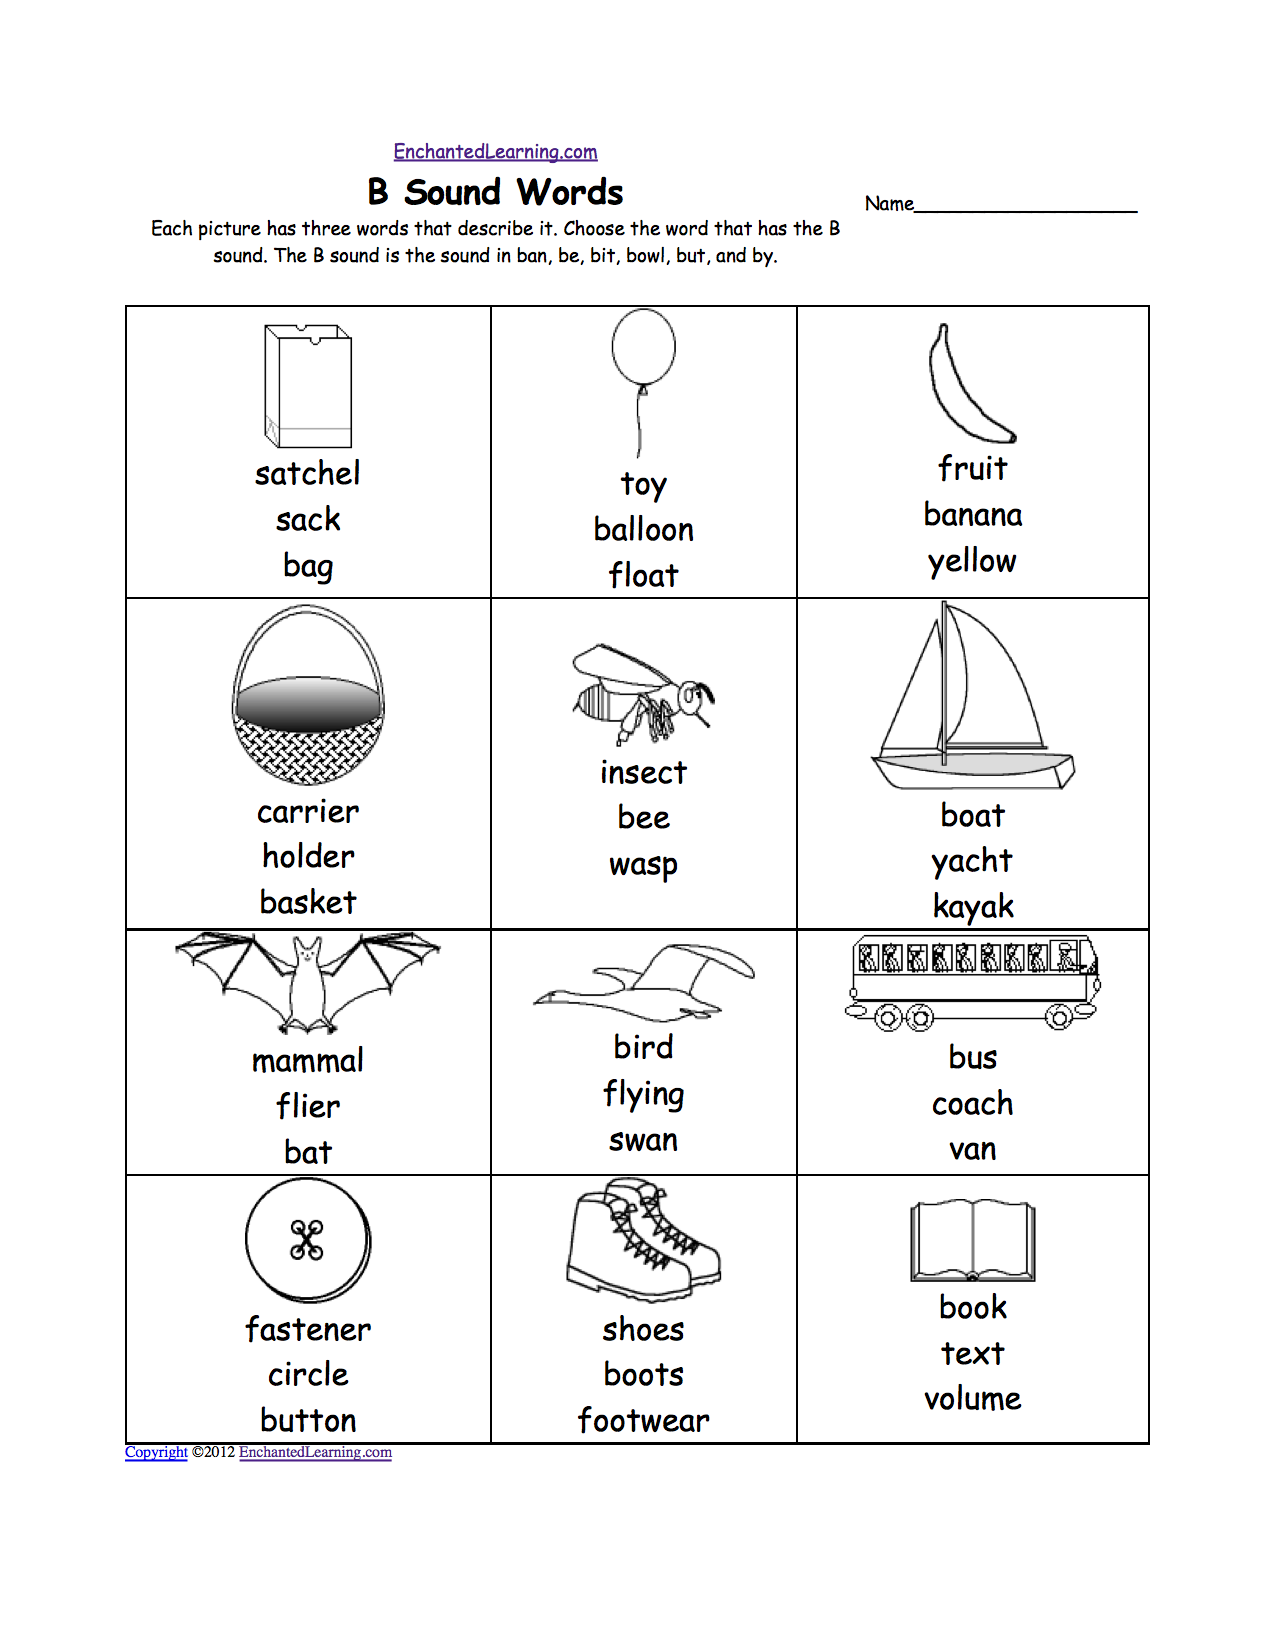 Proatmealus  Unusual Phonics Worksheets Multiple Choice Worksheets To Print  With Hot Quotbquot Sound Phonics Worksheet Multiple Choice Each Picture Has Three Words That Describe It Choose The Word That Has A Quotbquot Sound The Quotbquot Sound Is The Sound  With Agreeable Violin Theory Worksheets Also French Cognates Worksheet In Addition Helping And Linking Verbs Worksheets And Root Word Prefix Suffix Worksheet As Well As Contour Lines Worksheets Additionally Adjectives Worksheets Esl From Enchantedlearningcom With Proatmealus  Hot Phonics Worksheets Multiple Choice Worksheets To Print  With Agreeable Quotbquot Sound Phonics Worksheet Multiple Choice Each Picture Has Three Words That Describe It Choose The Word That Has A Quotbquot Sound The Quotbquot Sound Is The Sound  And Unusual Violin Theory Worksheets Also French Cognates Worksheet In Addition Helping And Linking Verbs Worksheets From Enchantedlearningcom